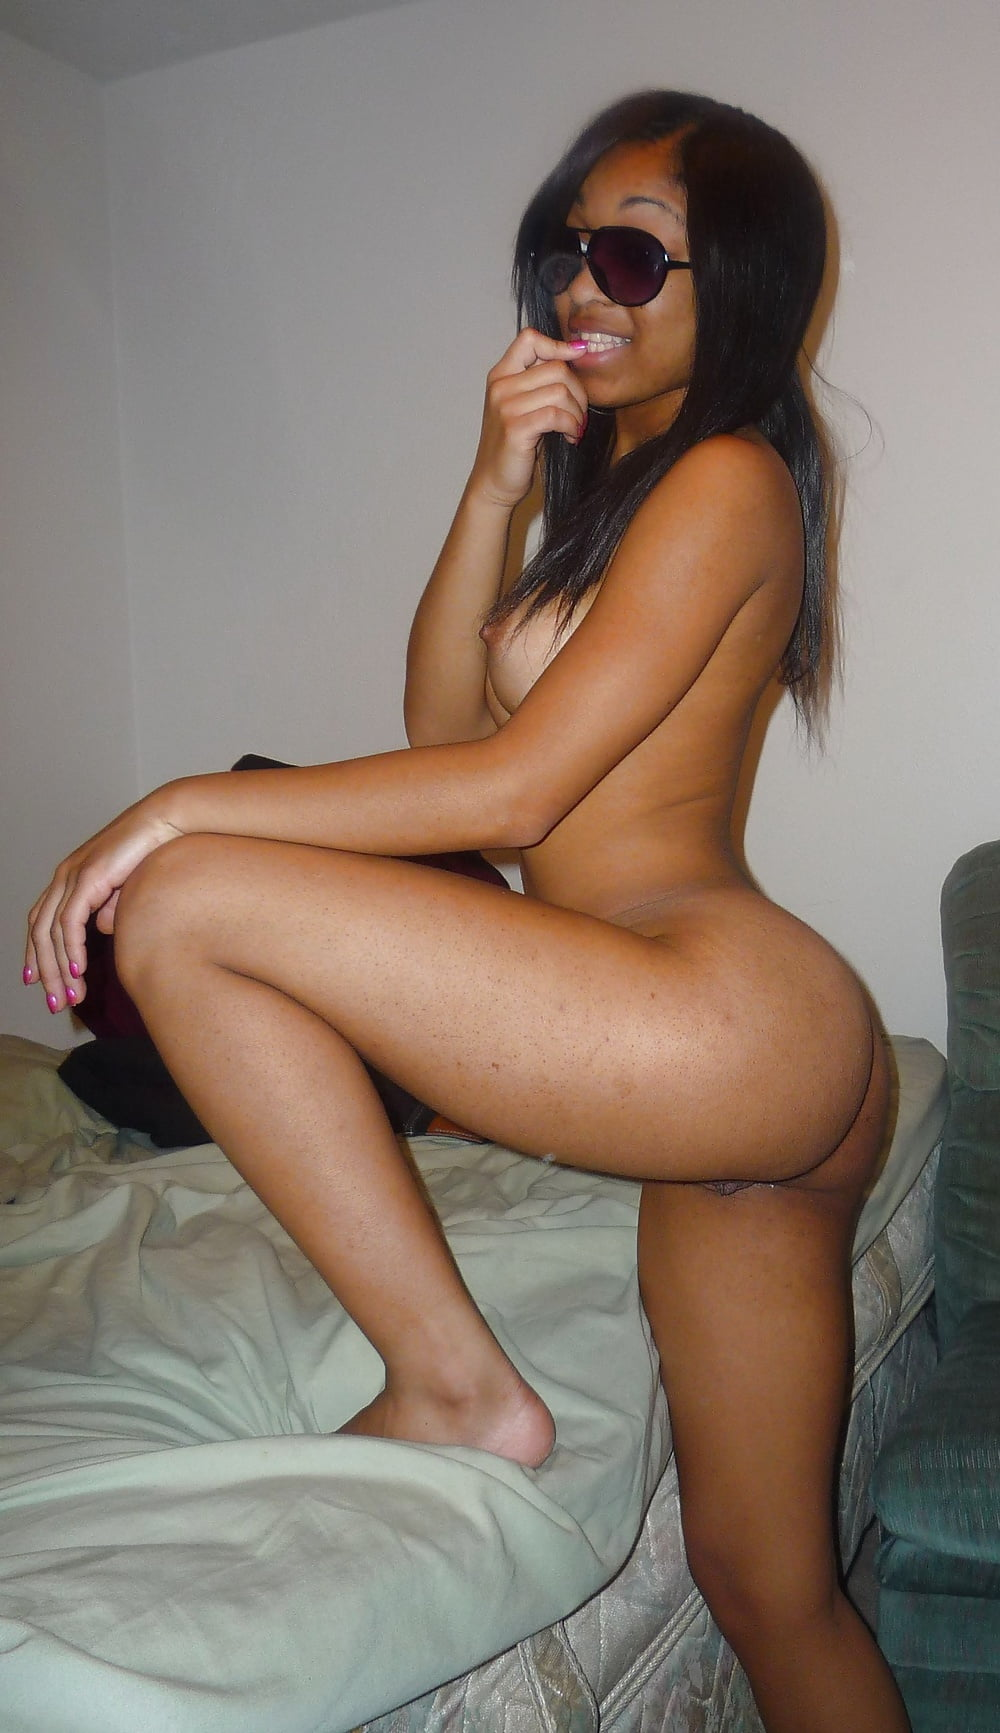 Free online adult nude web chat